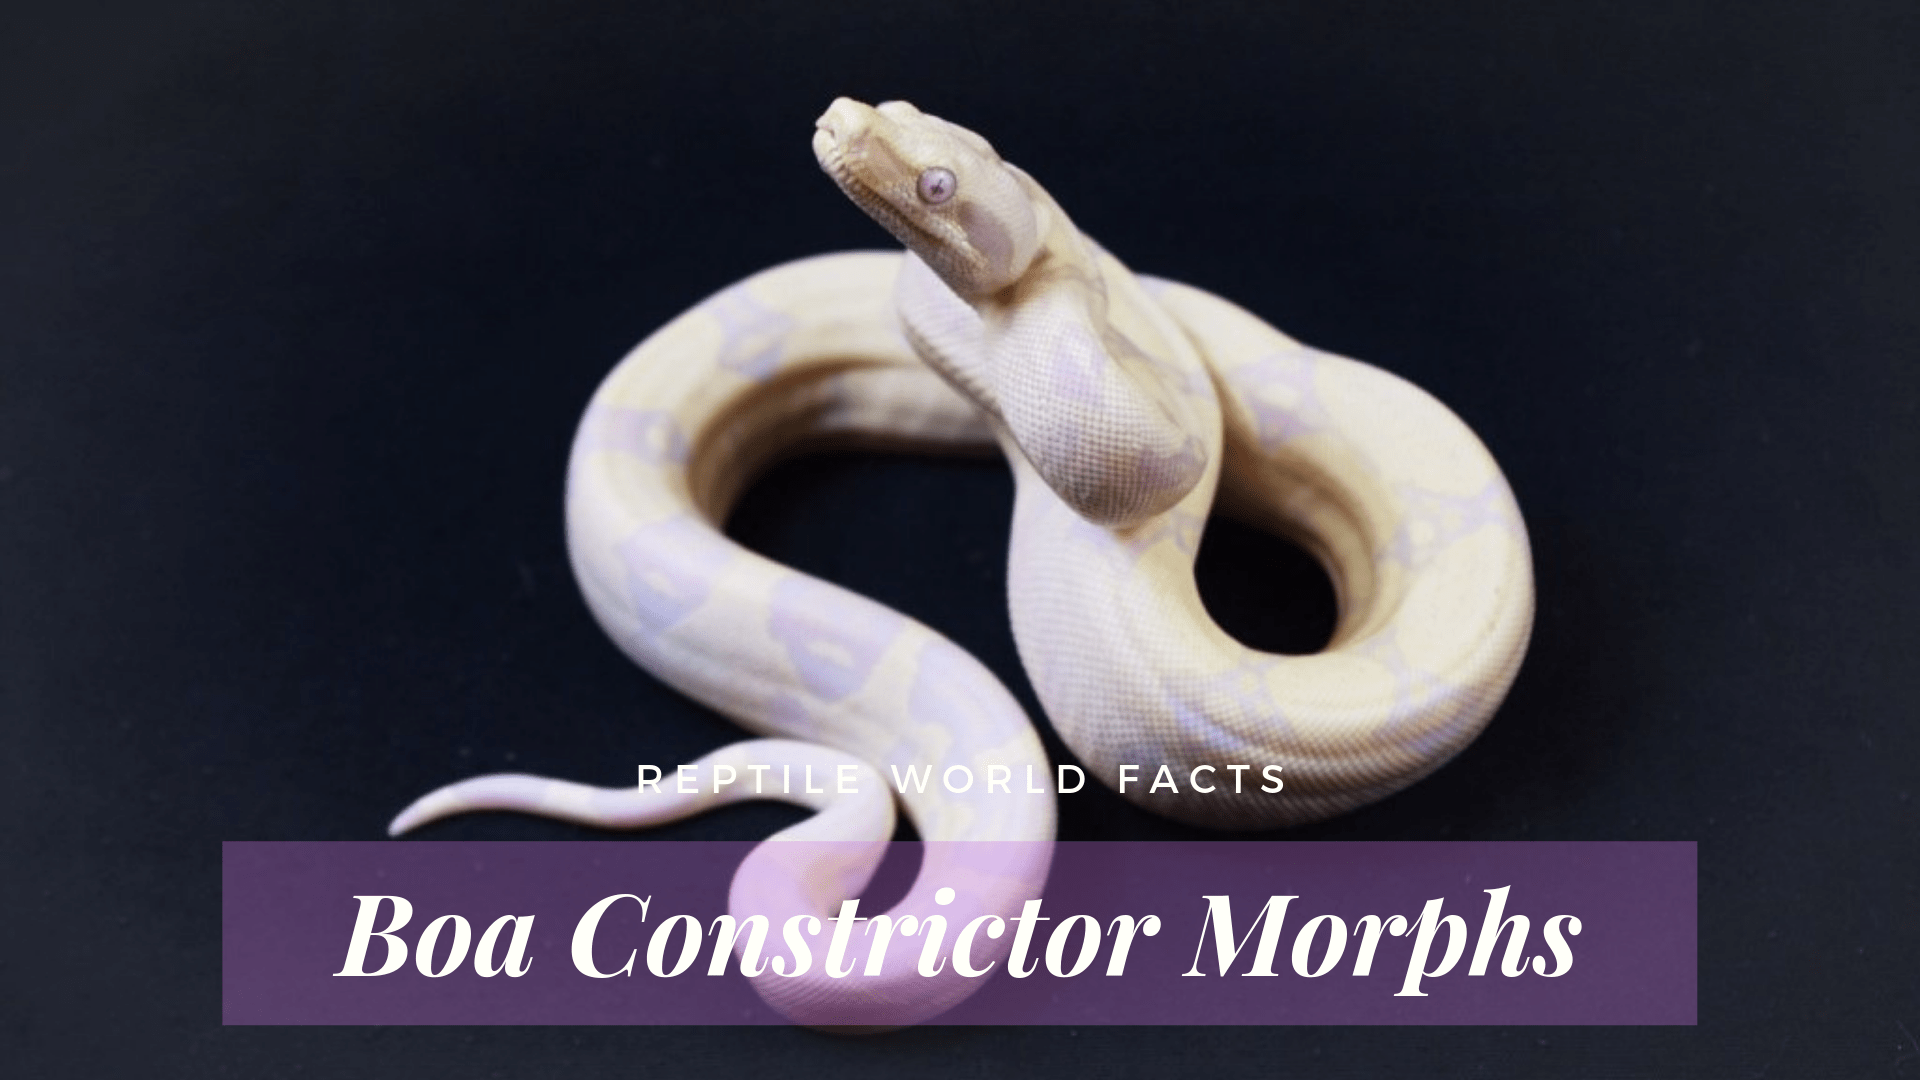 10 Beautiful Boa Constrictor Morphs - ReptileWorldFacts